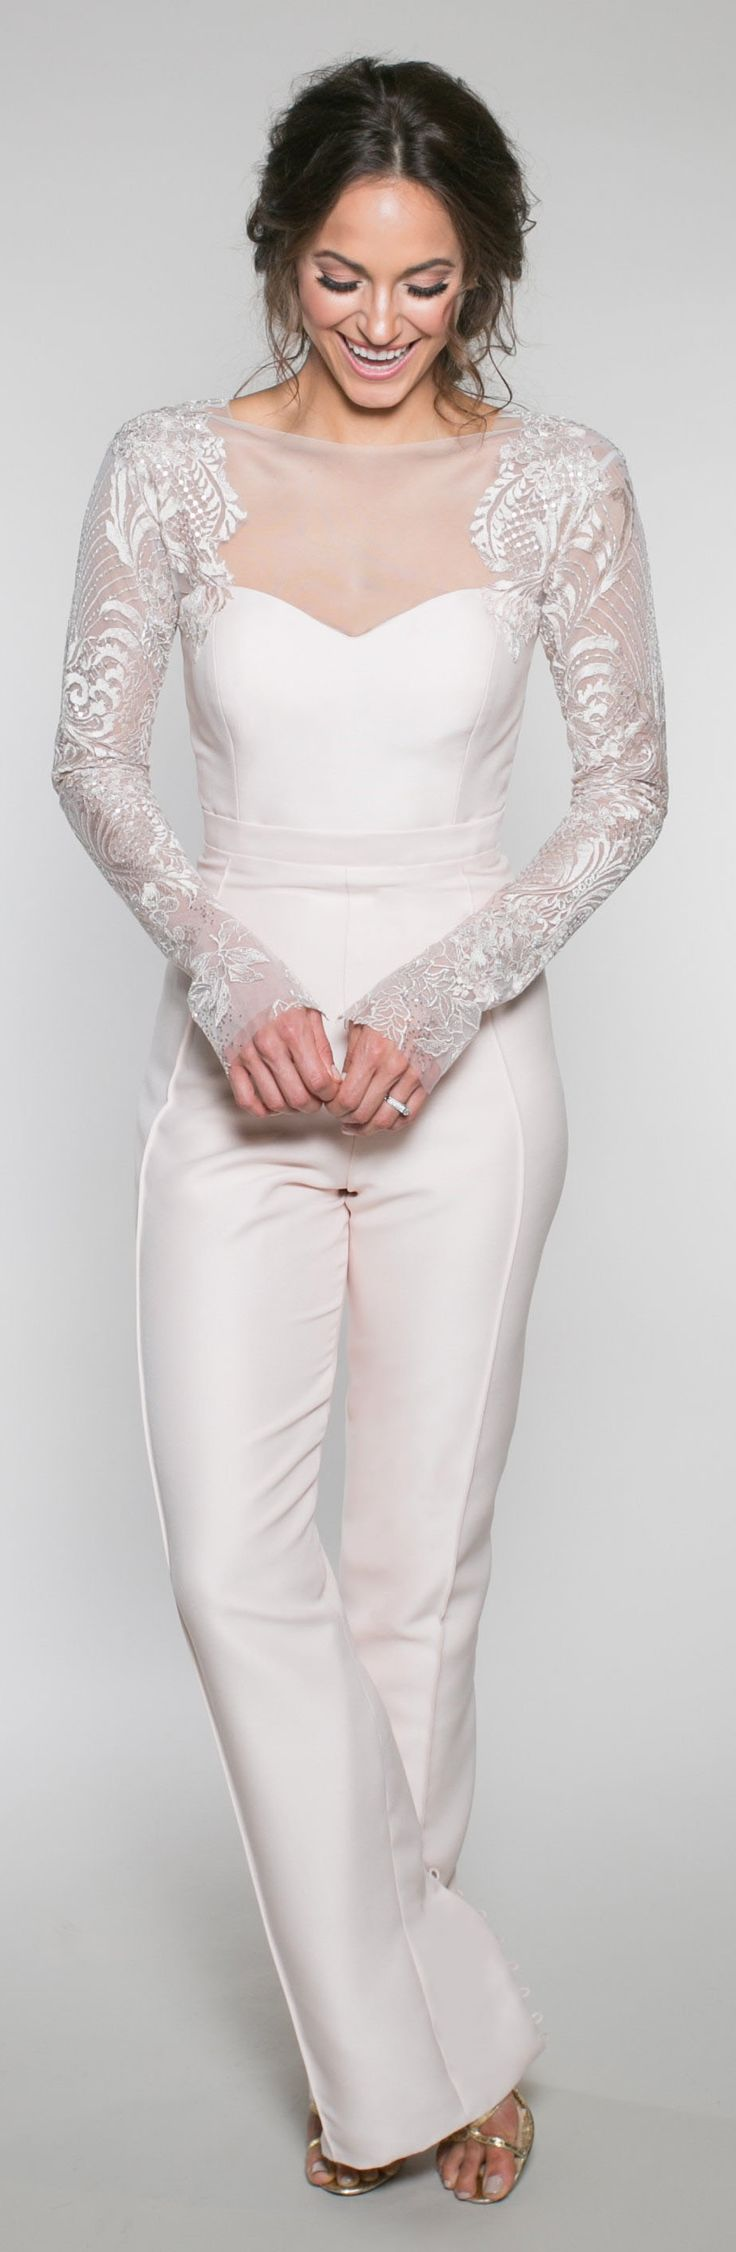 """Olivia Jane 